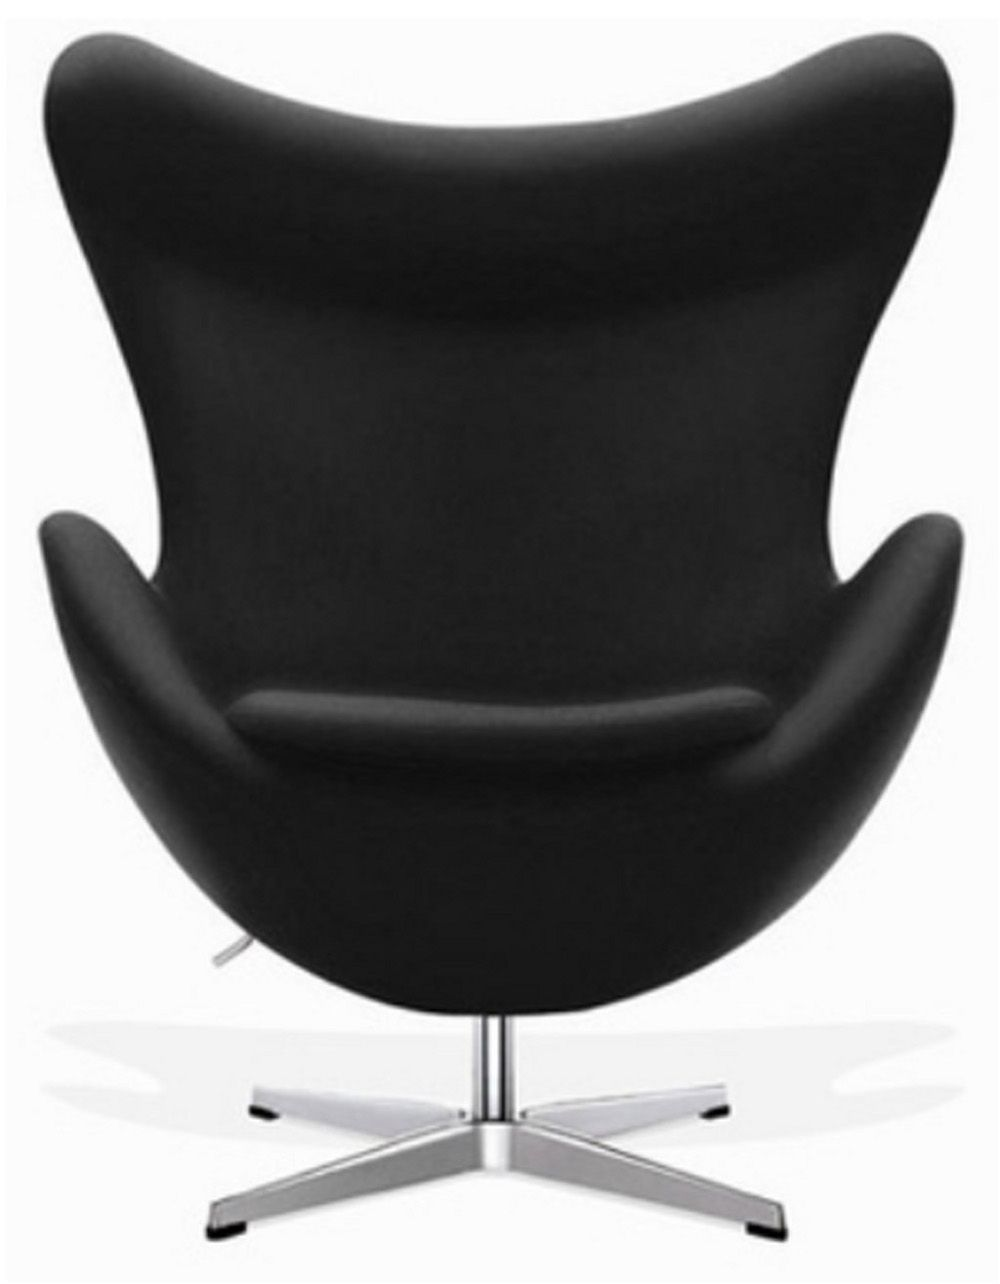 contemporary home office chair | Office | Pinterest | Contemporary ...